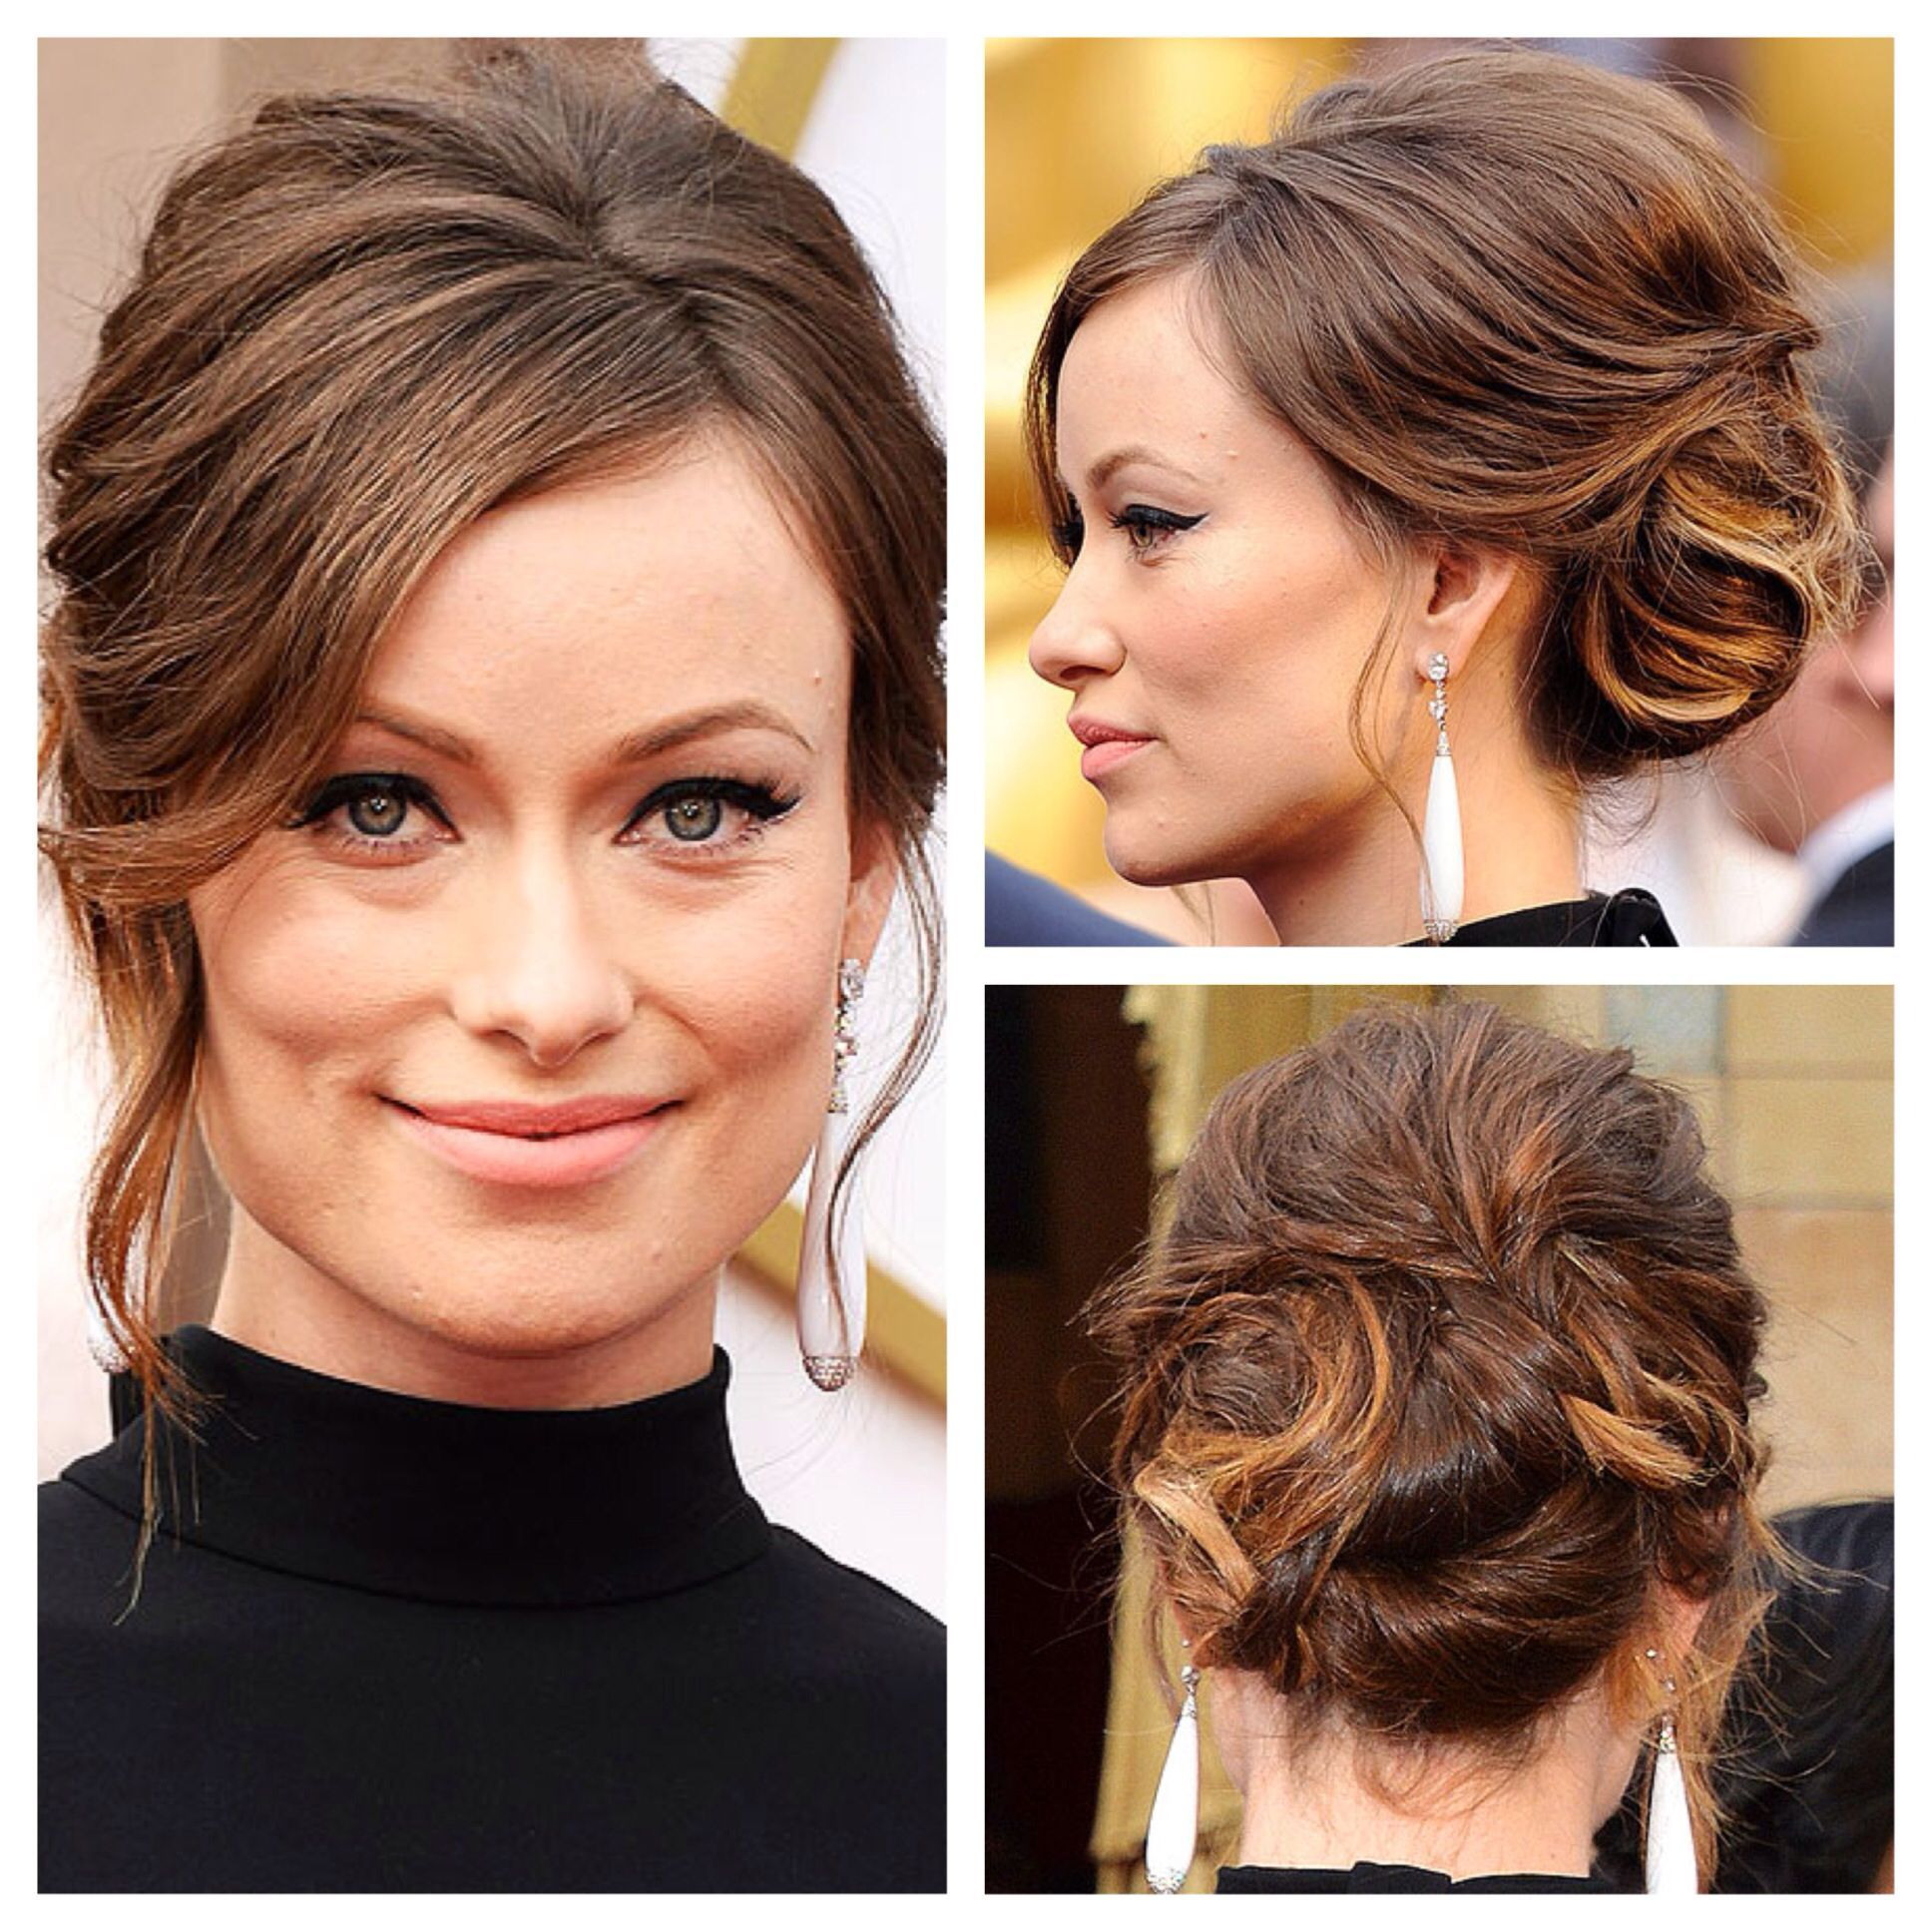 Hairstyle For Wedding Front View: Image Result For Olivia Wilde Updo